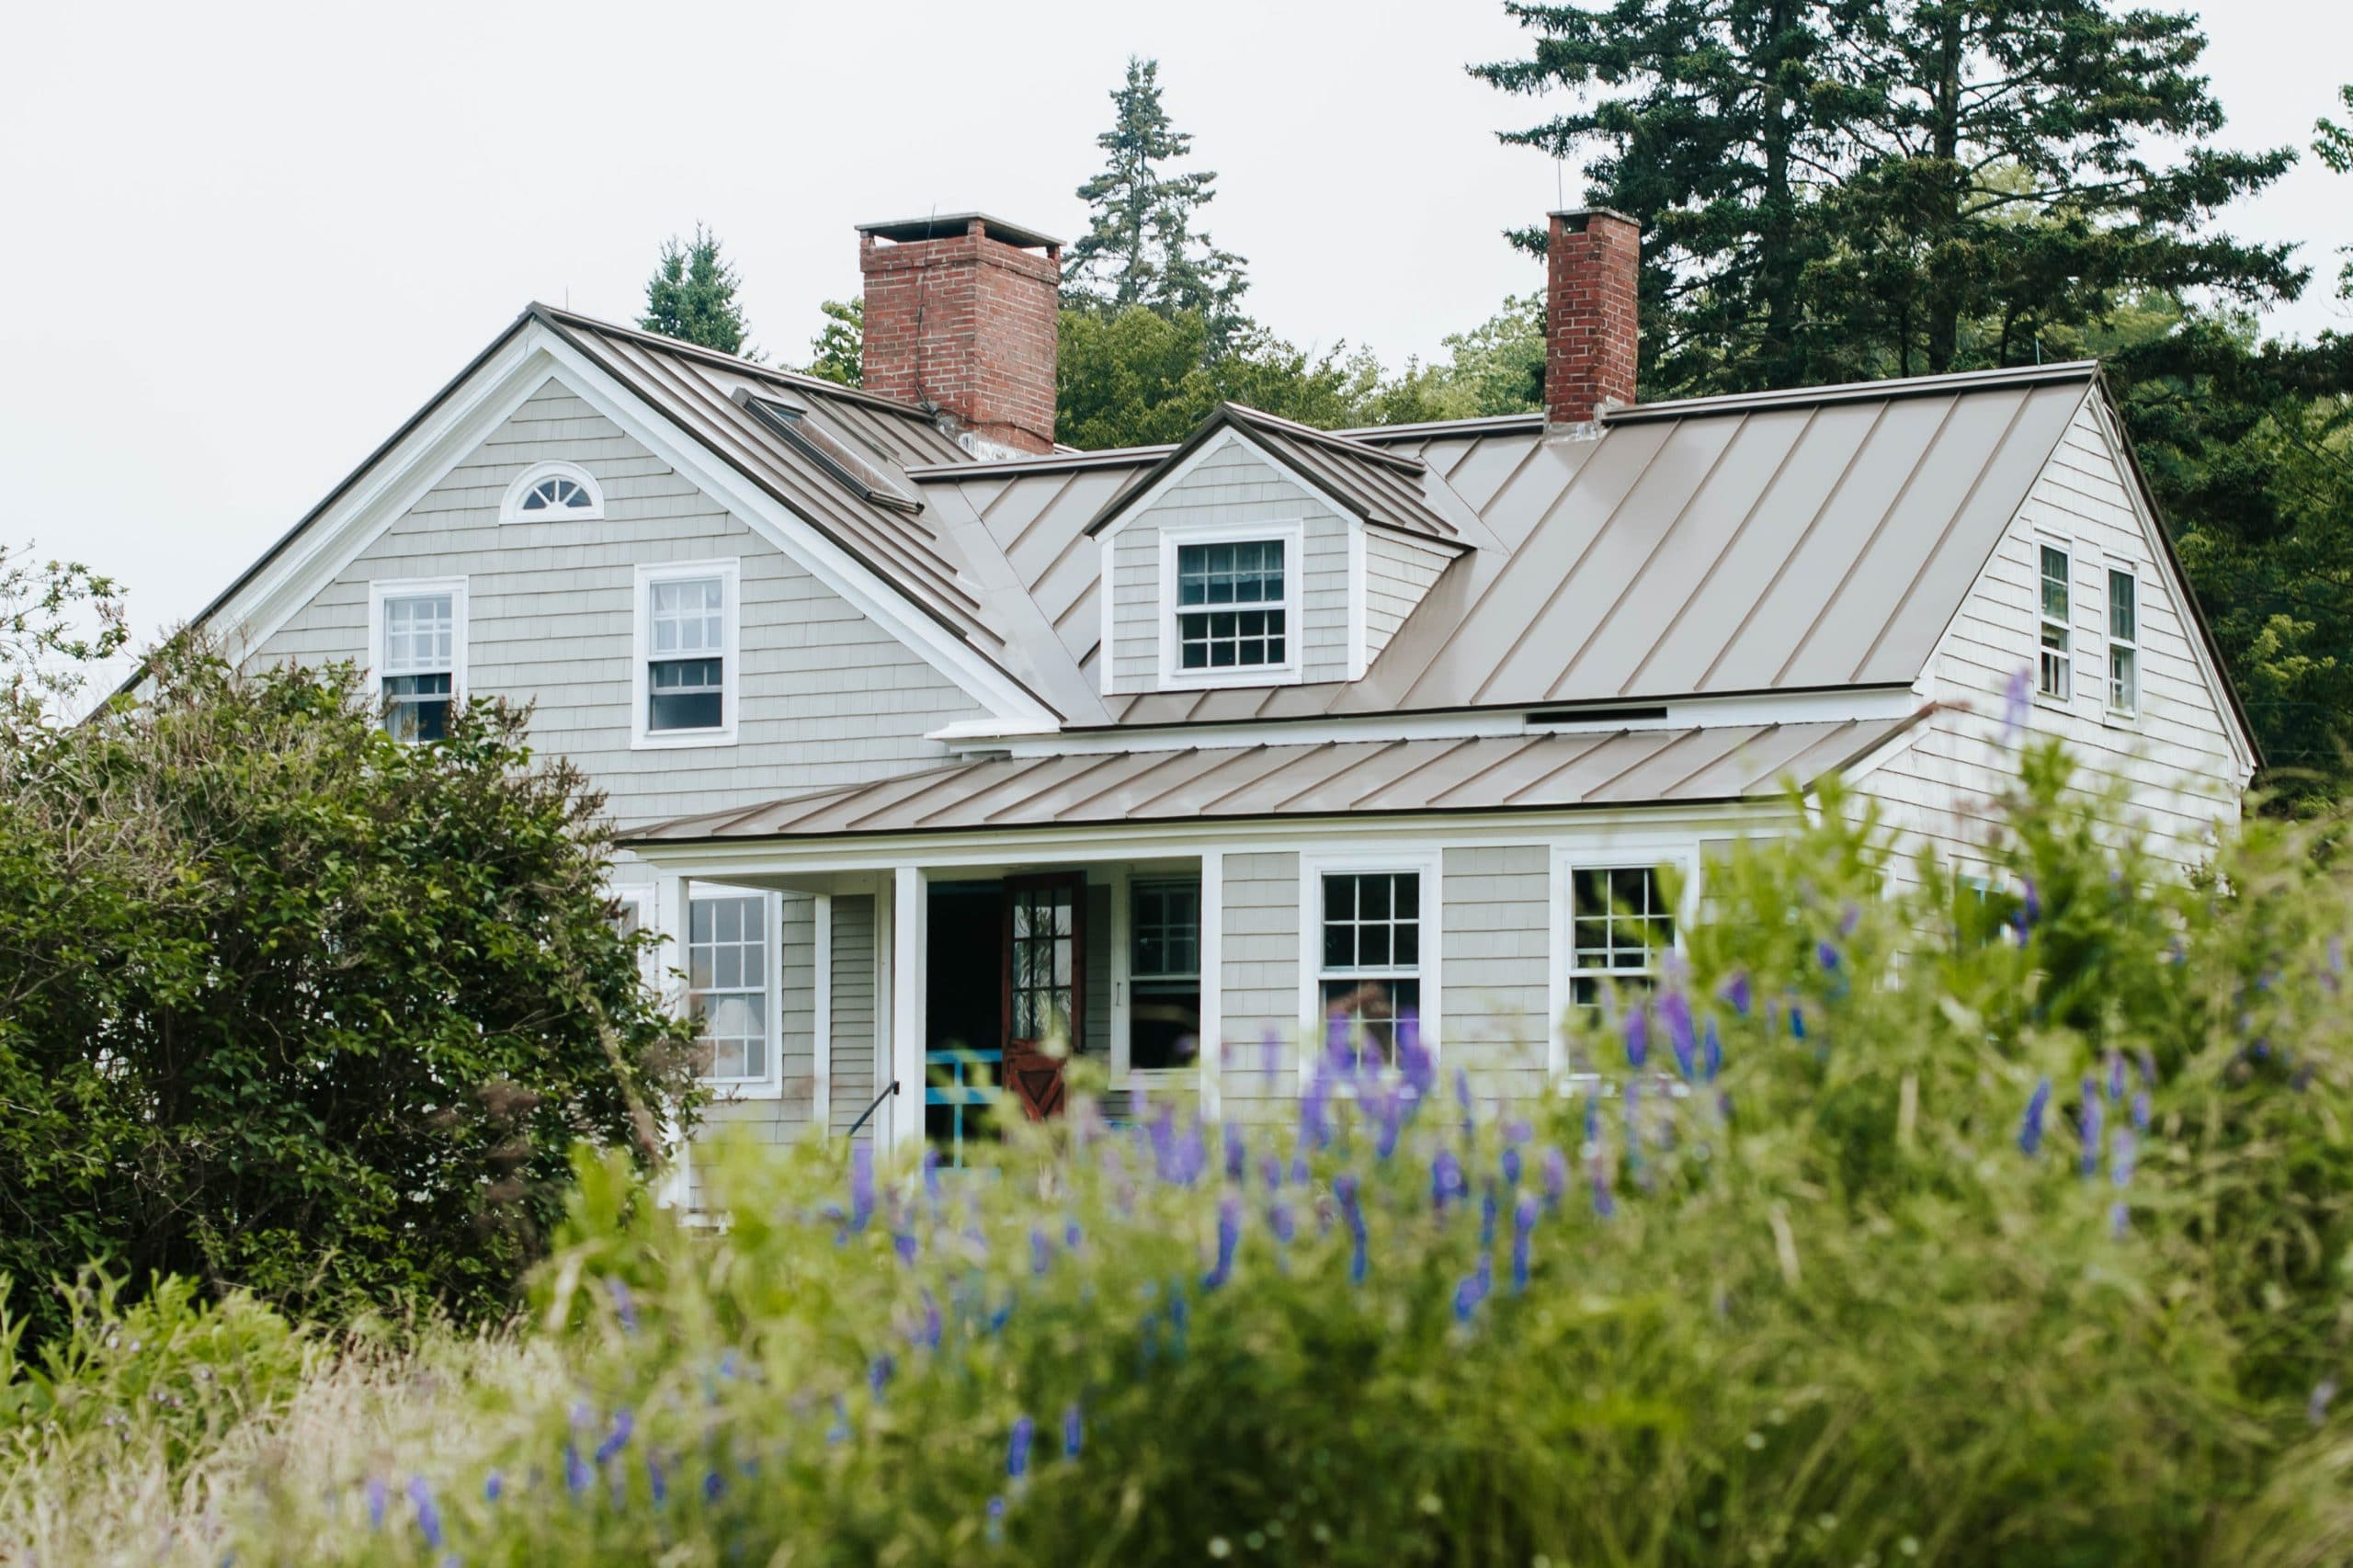 Home Loan Features You Should Consider